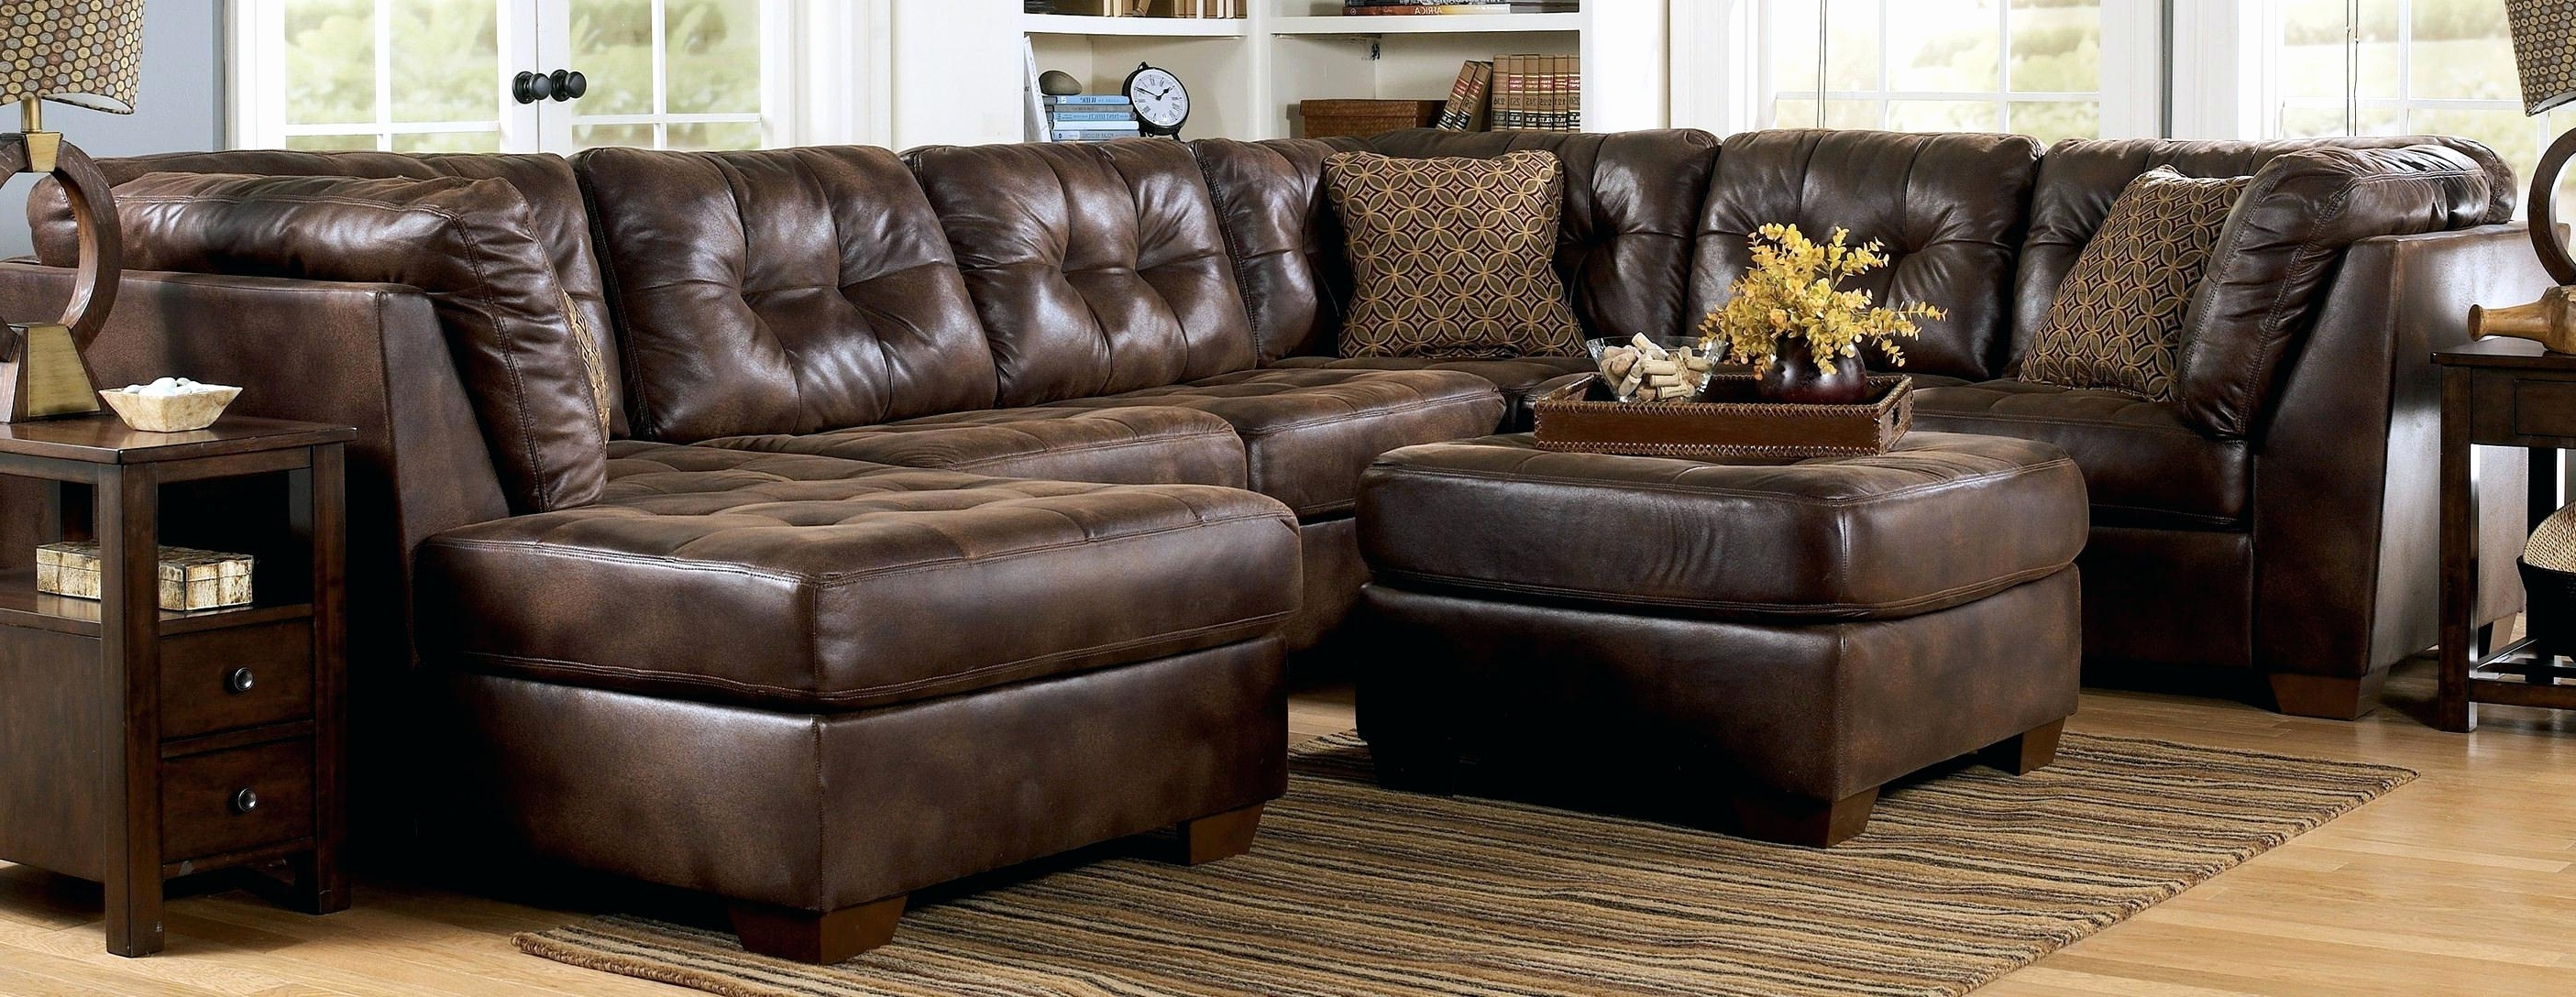 Leather Sofas With Chaise Lounge For Most Recently Released Awesome Brown Leather Couch With Studs 2018 – Couches And Sofas Ideas (View 9 of 15)